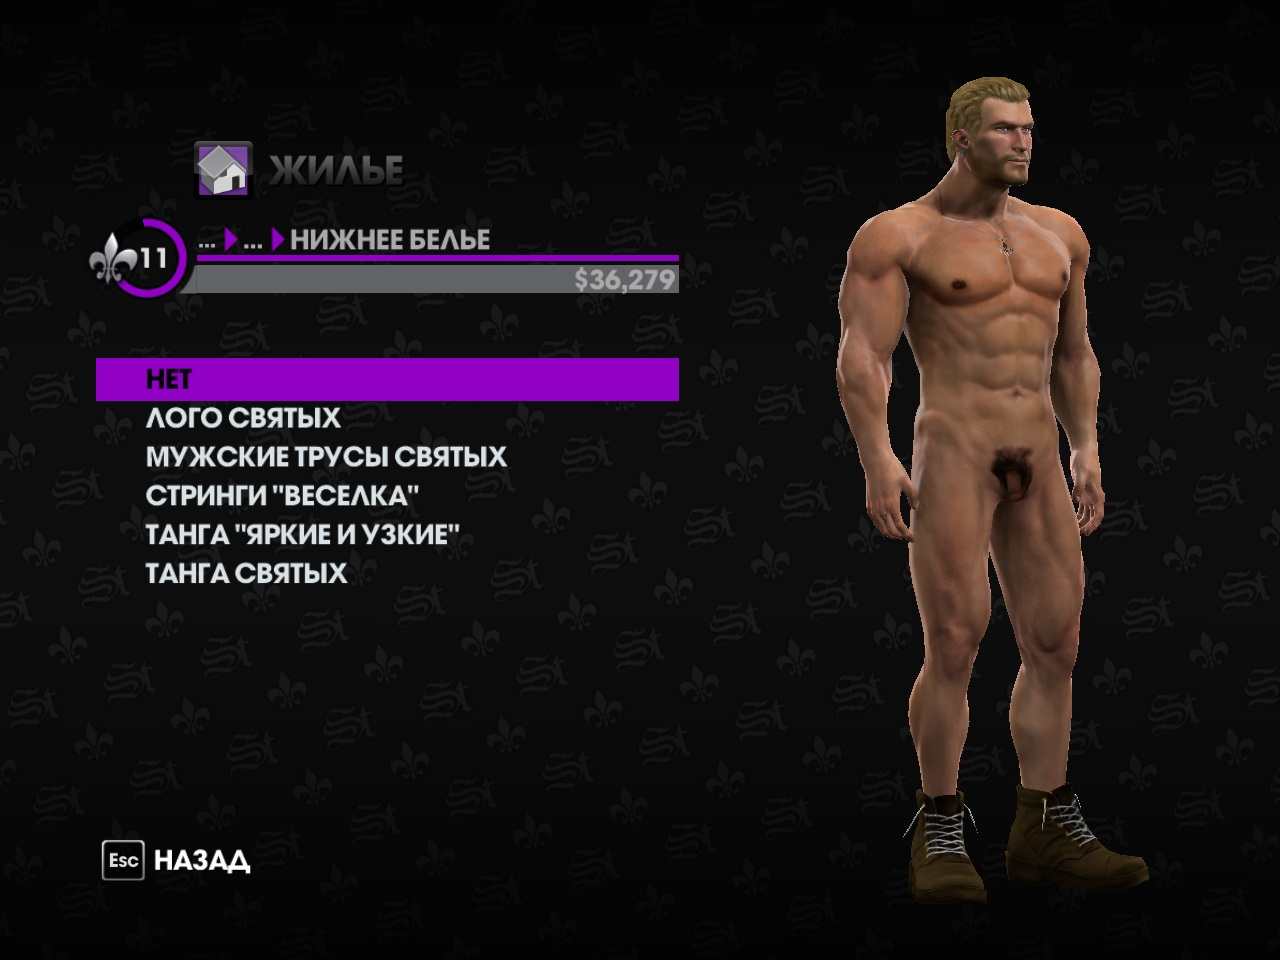 Saints row 2 naked mods erotic scene